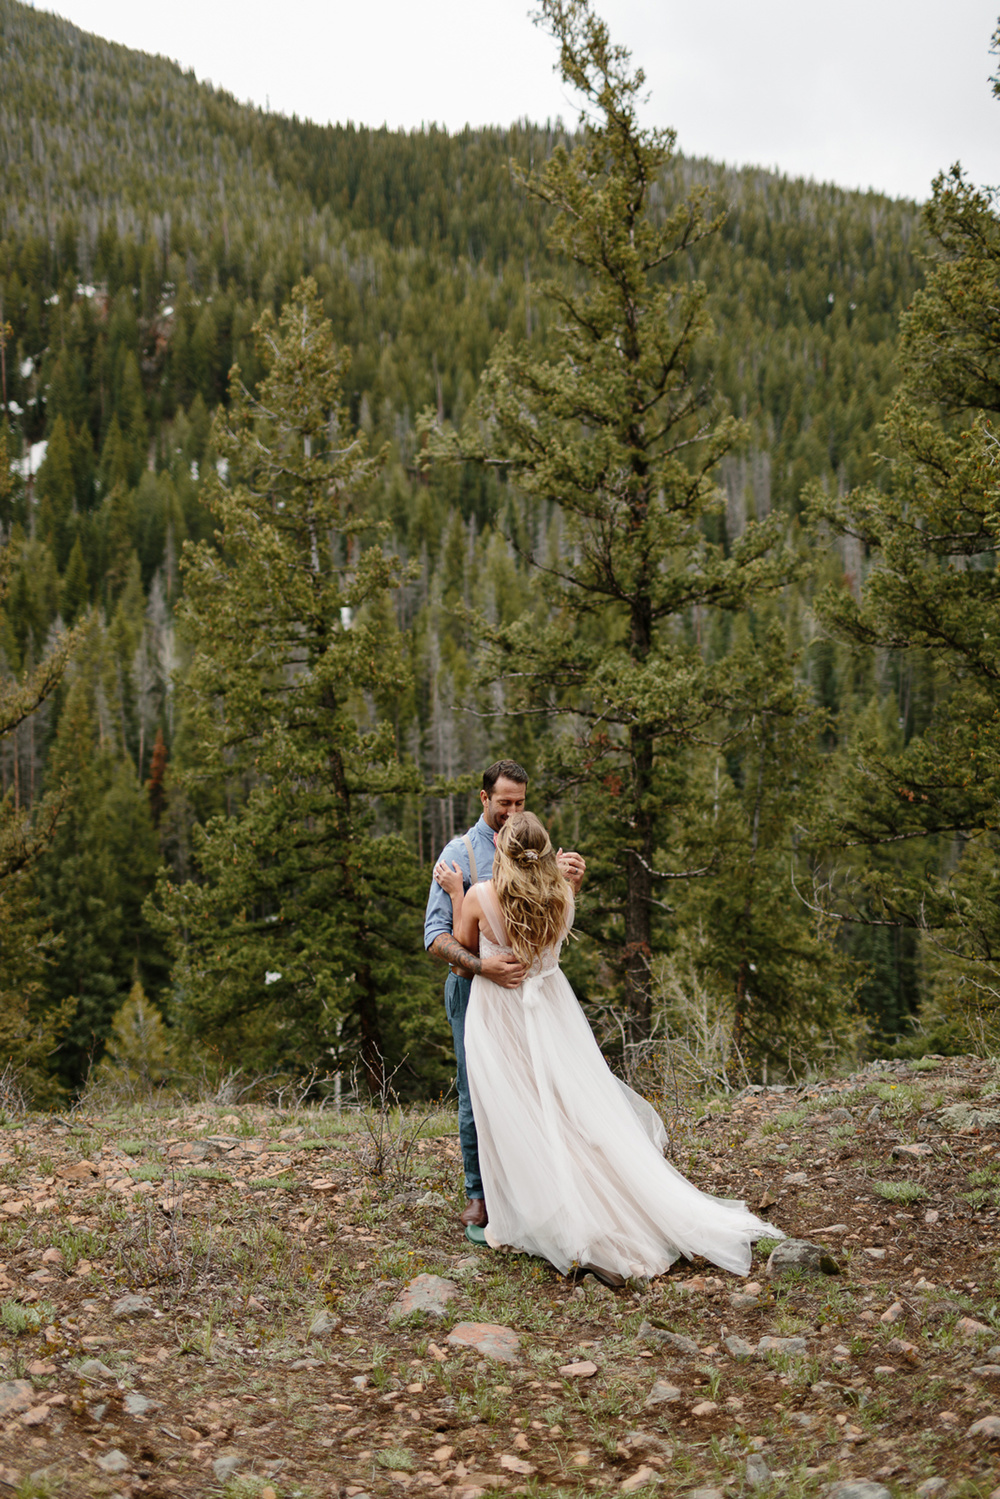 049-vail-elopement-photographer-chris-and-tara.jpg